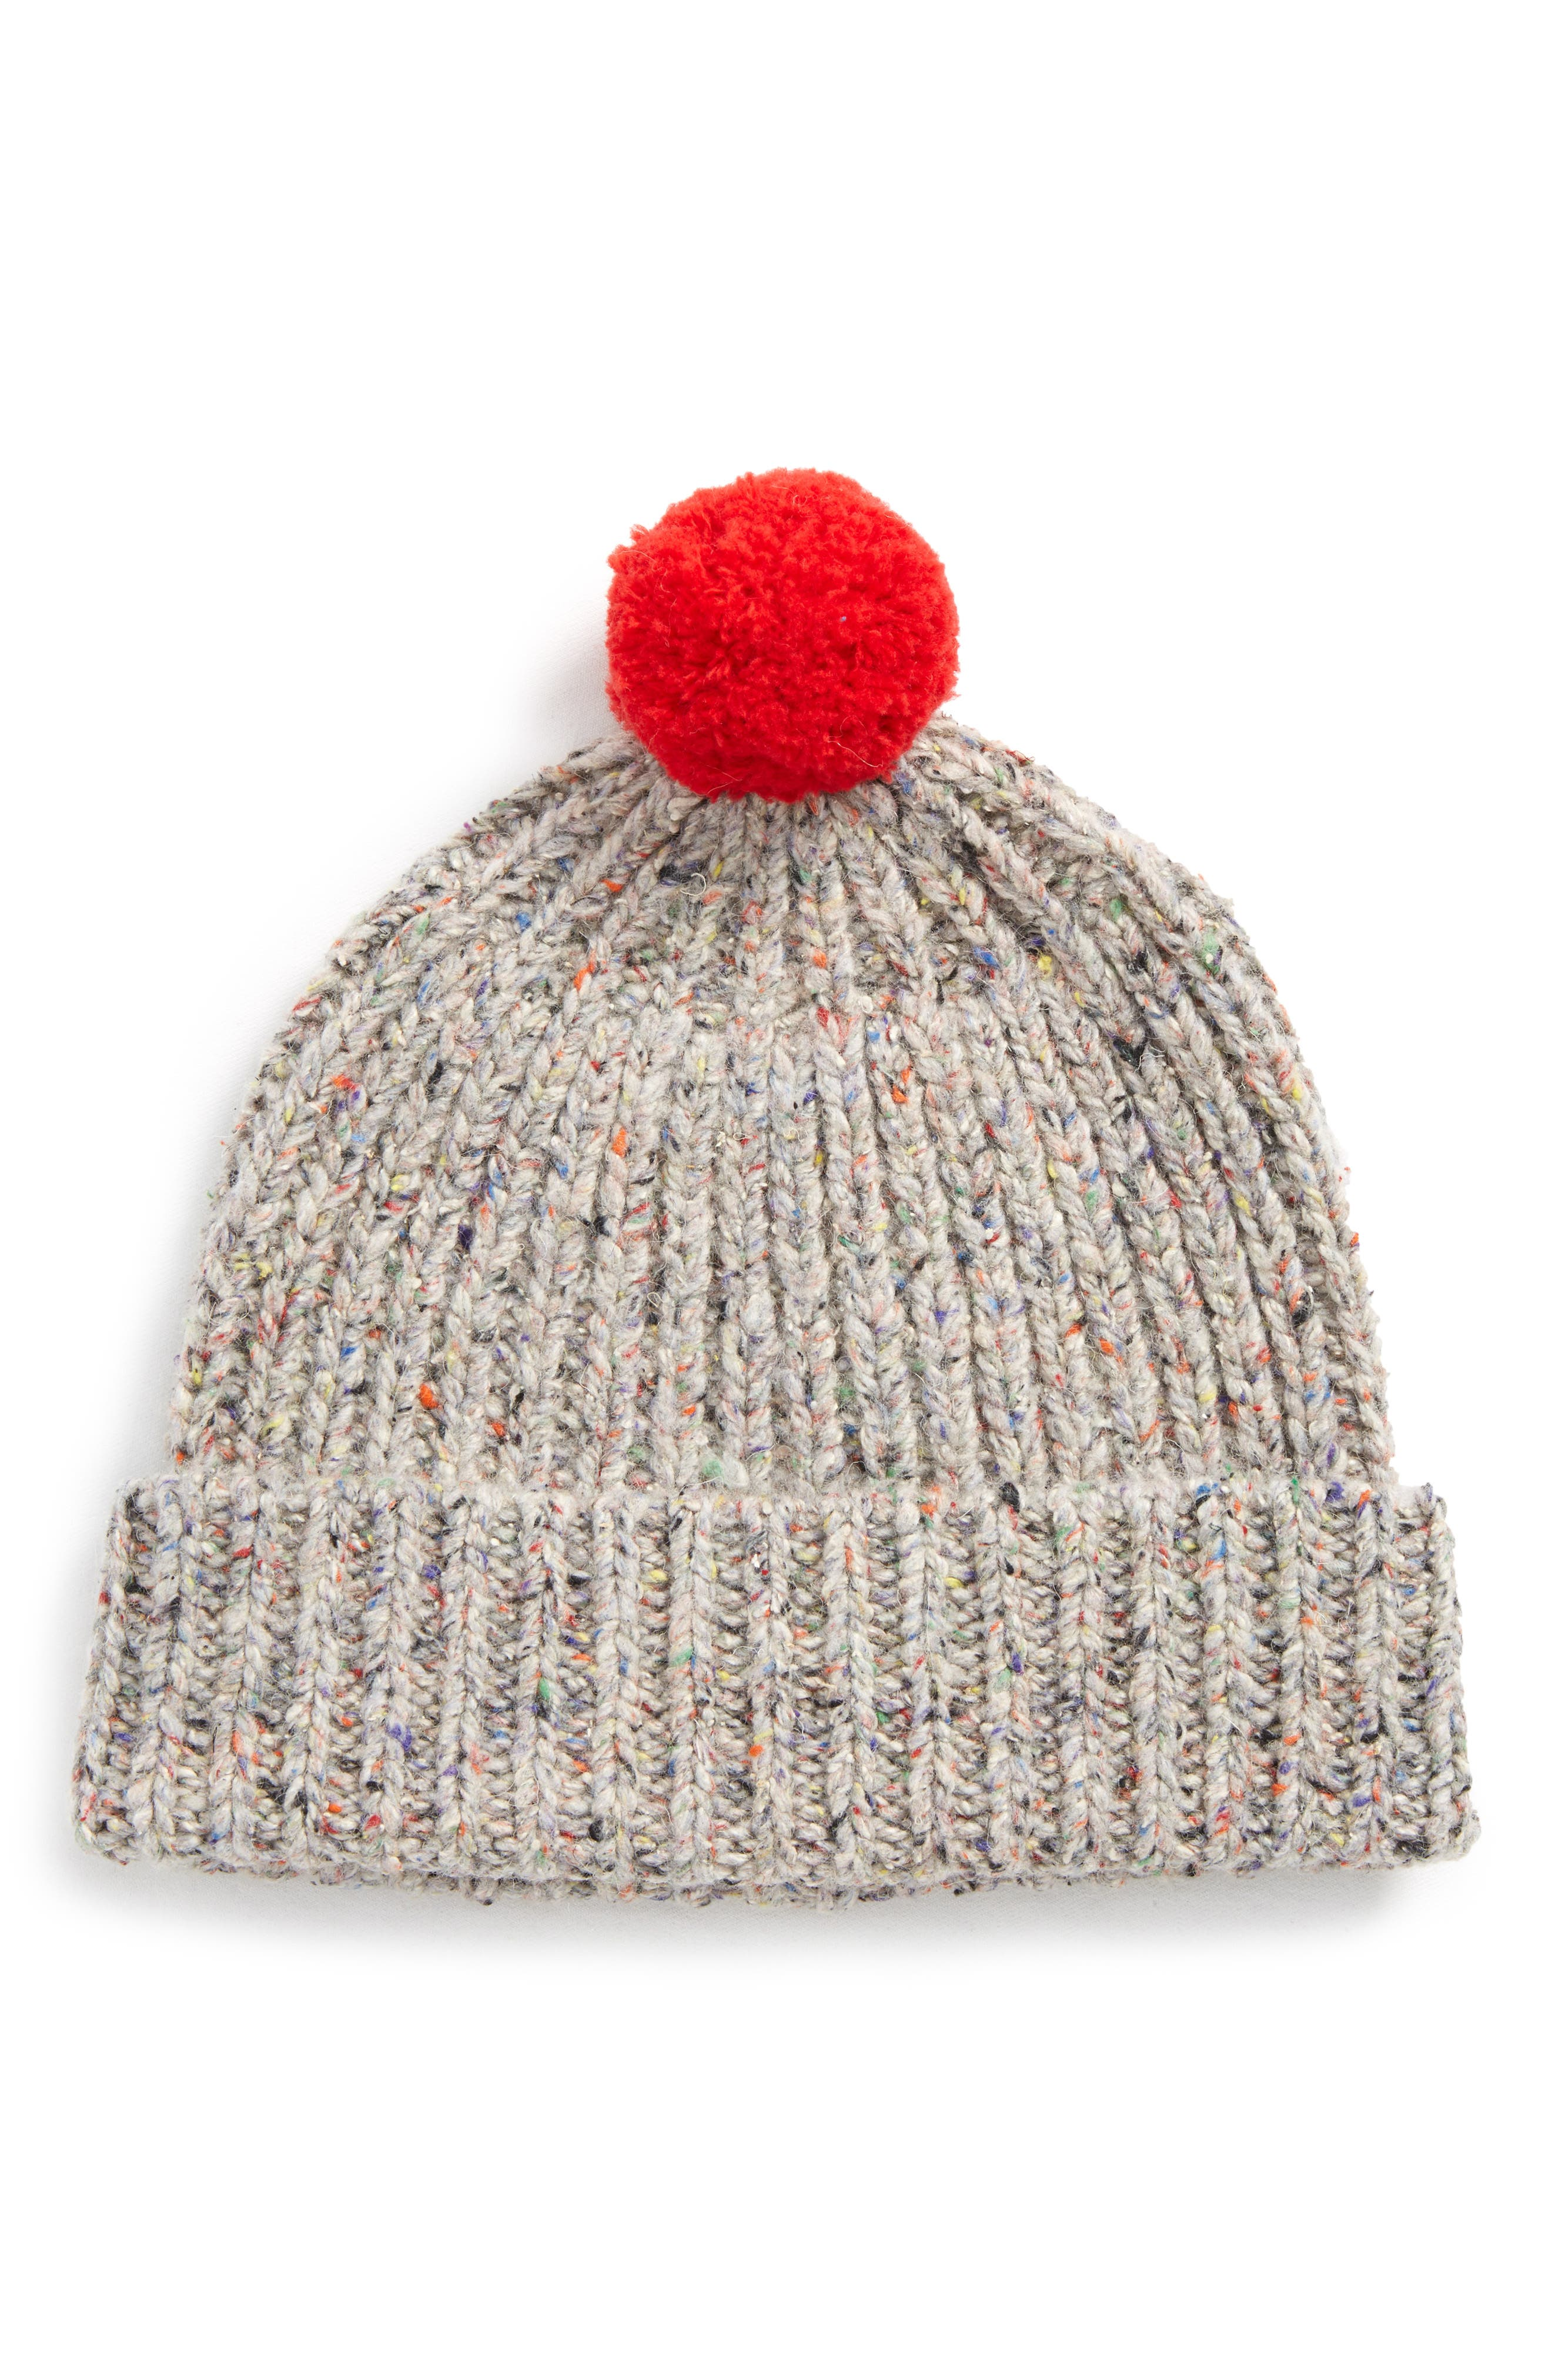 Alternate Image 1 Selected - Madewell Ribbed Pompom Beanie